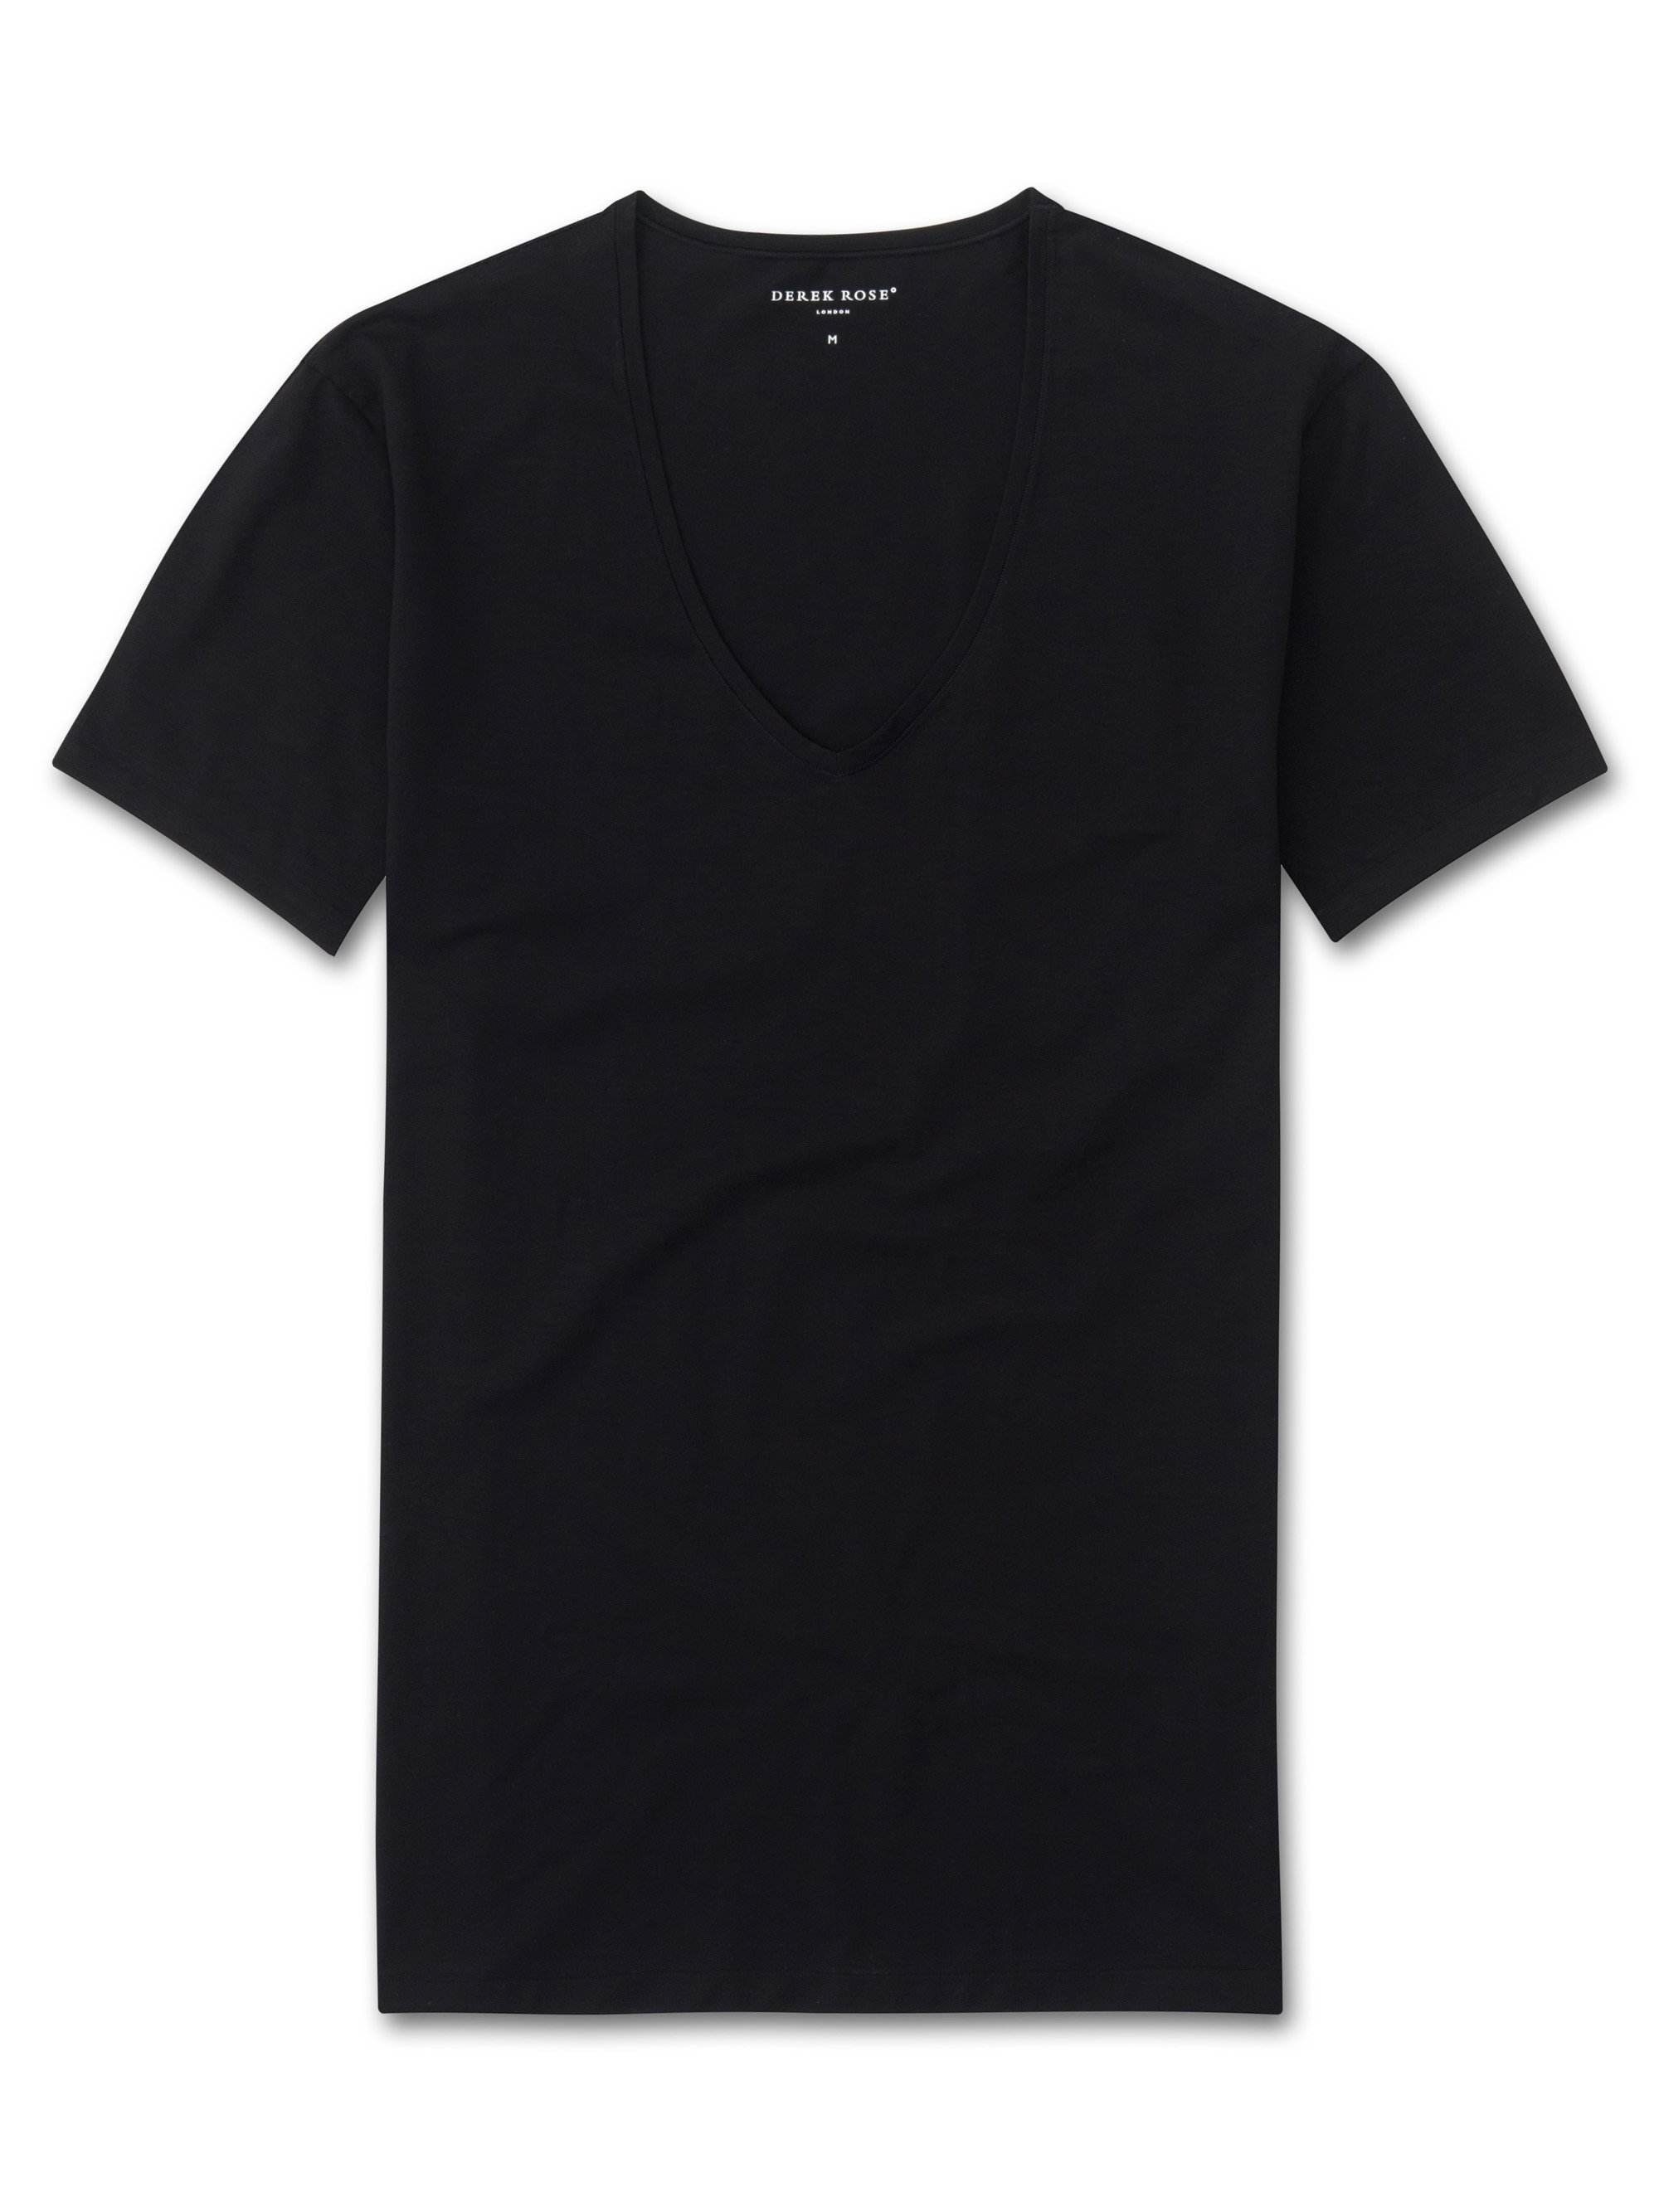 Men's Underwear V-Neck T-Shirt Jack Pima Cotton Stretch Black